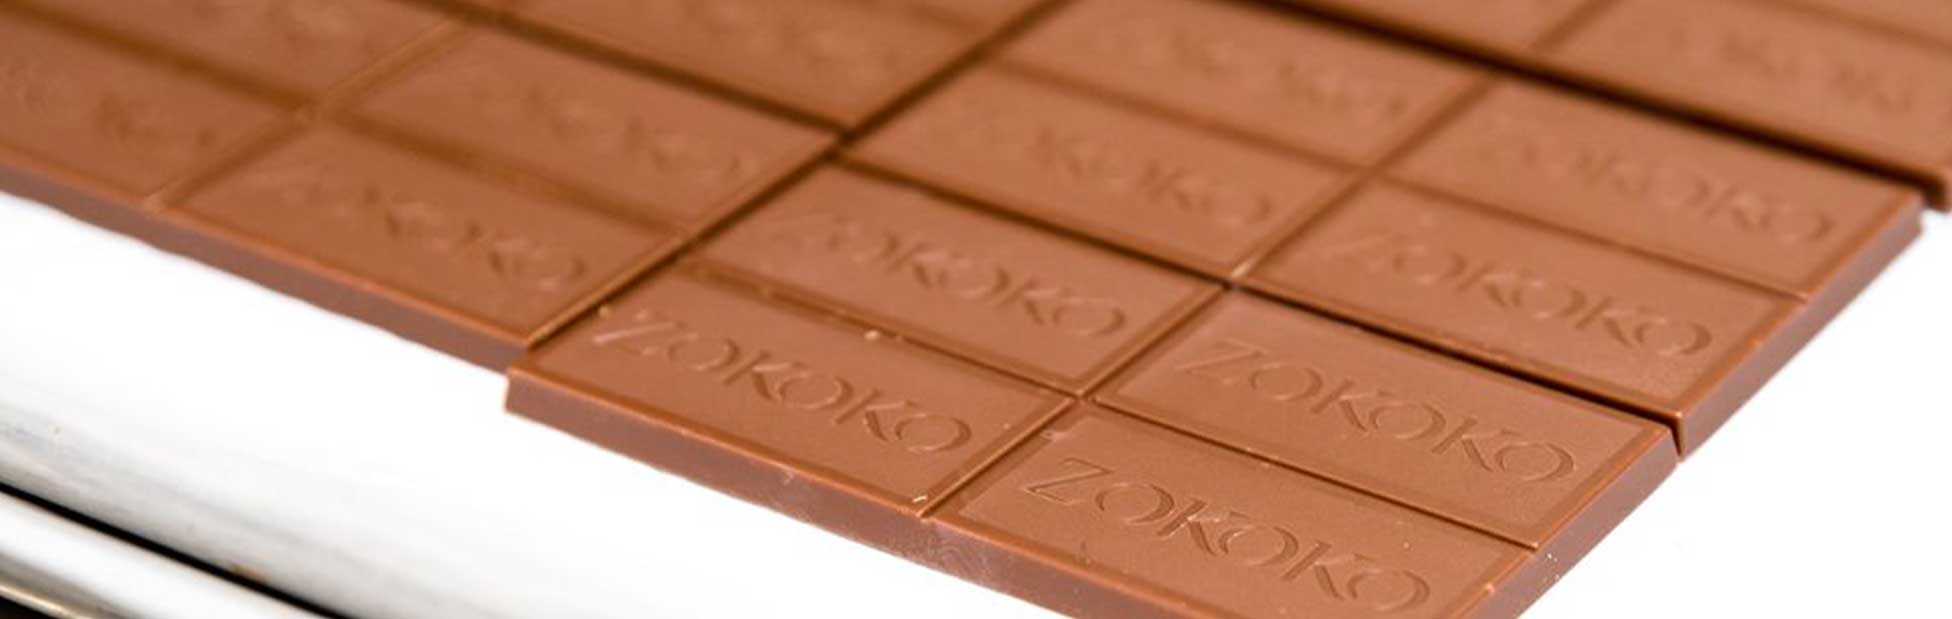 Squares of chocolate stamped ZOKOKO